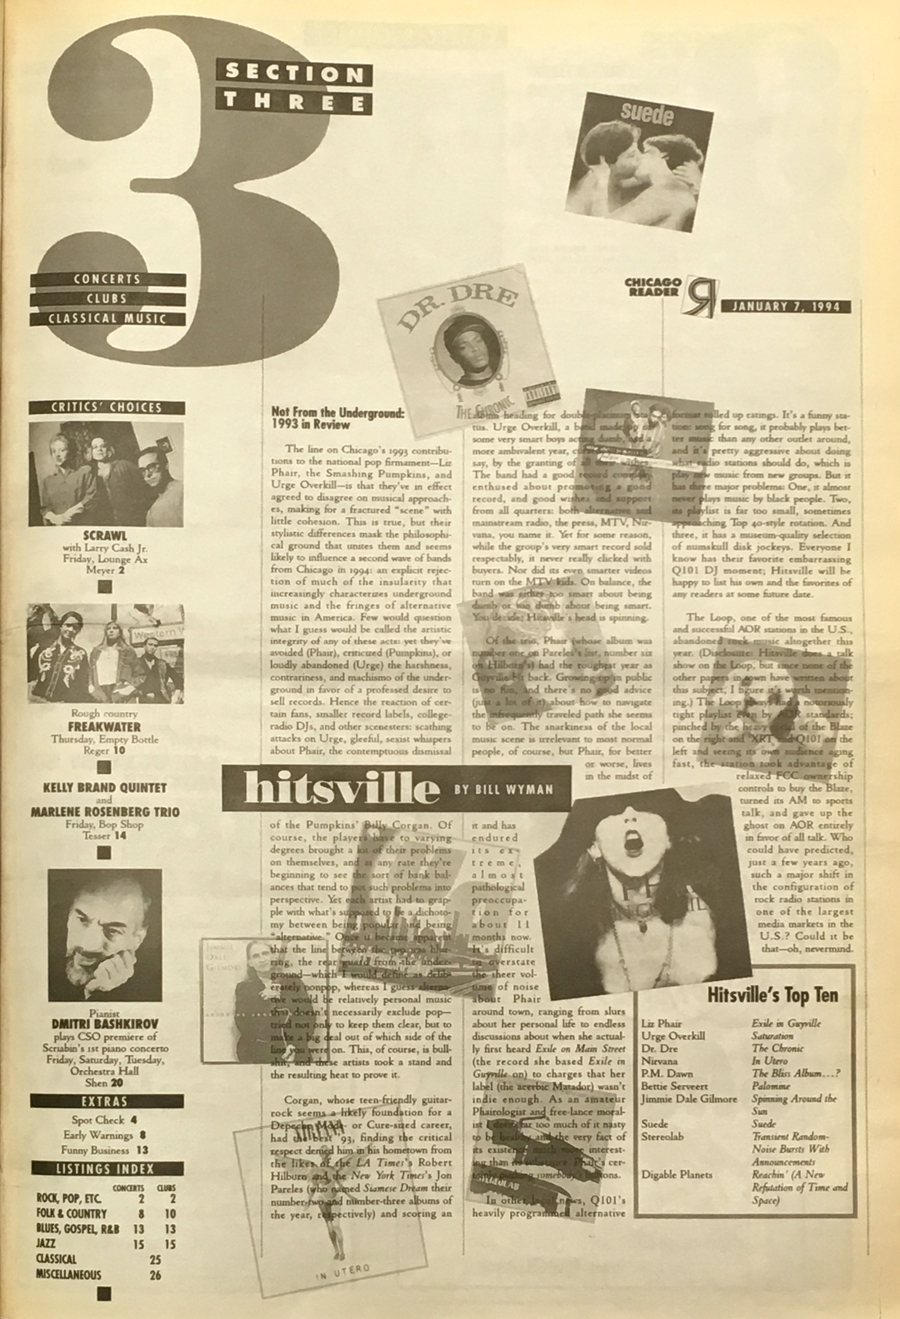 Bill Wyman's Hitsville column of January 7, 1994. Click to enlarge.